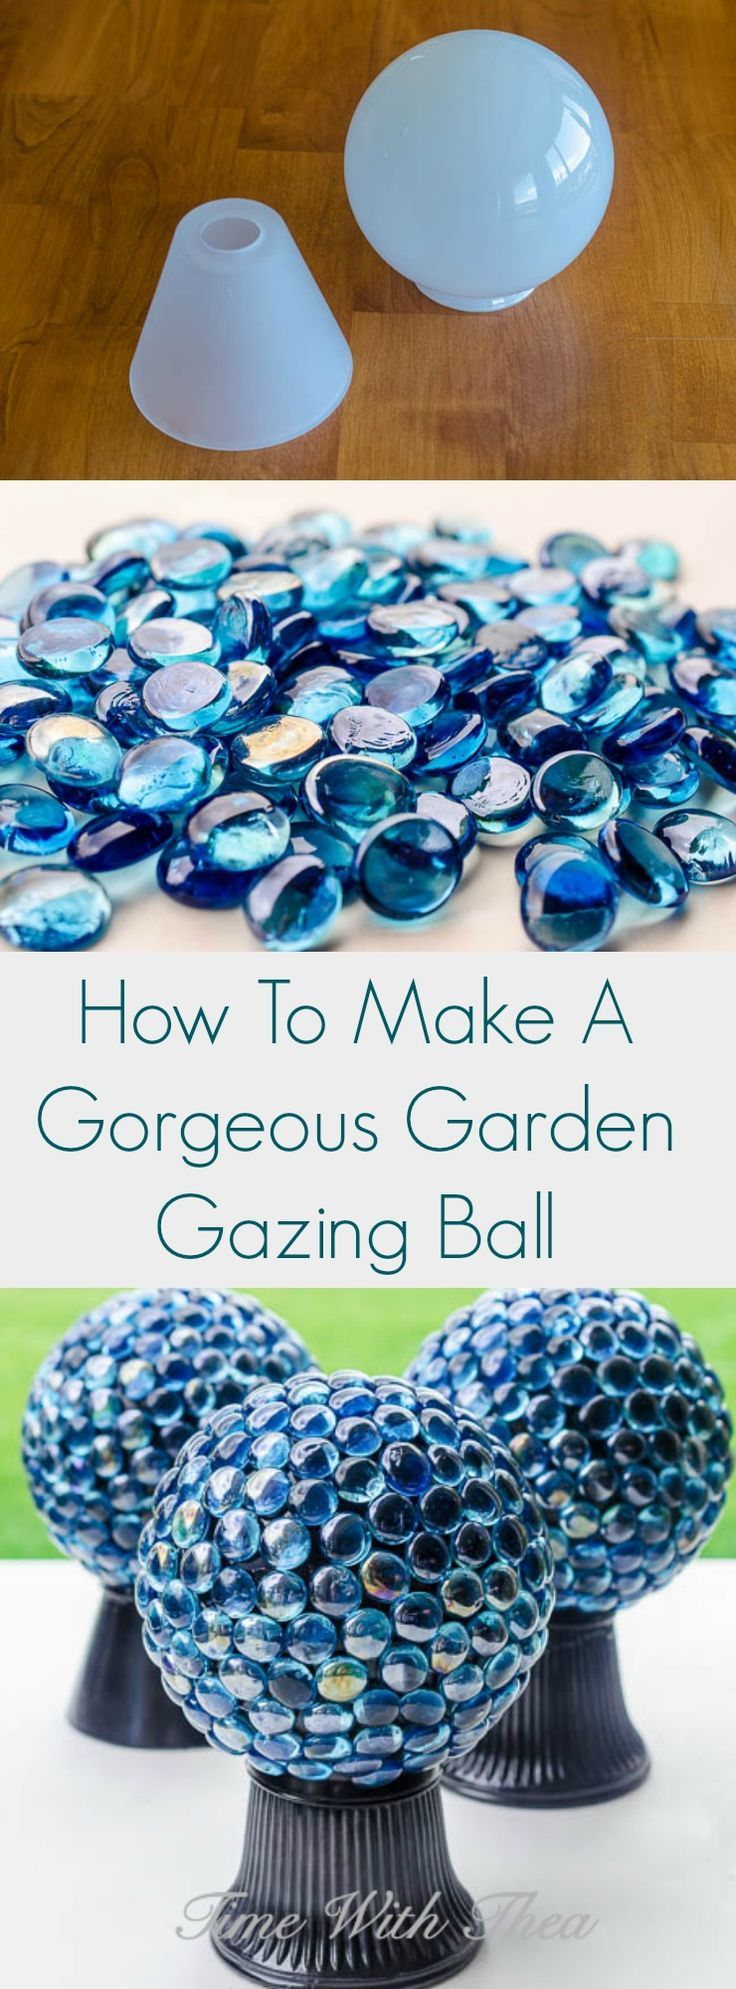 Make this gorgeous garden gazing ball to add to your garden decor using items purchased at the thrift store and dollar store! It is both easy and inexpensive to make with these detailed tips and instructions. / timewiththea.com